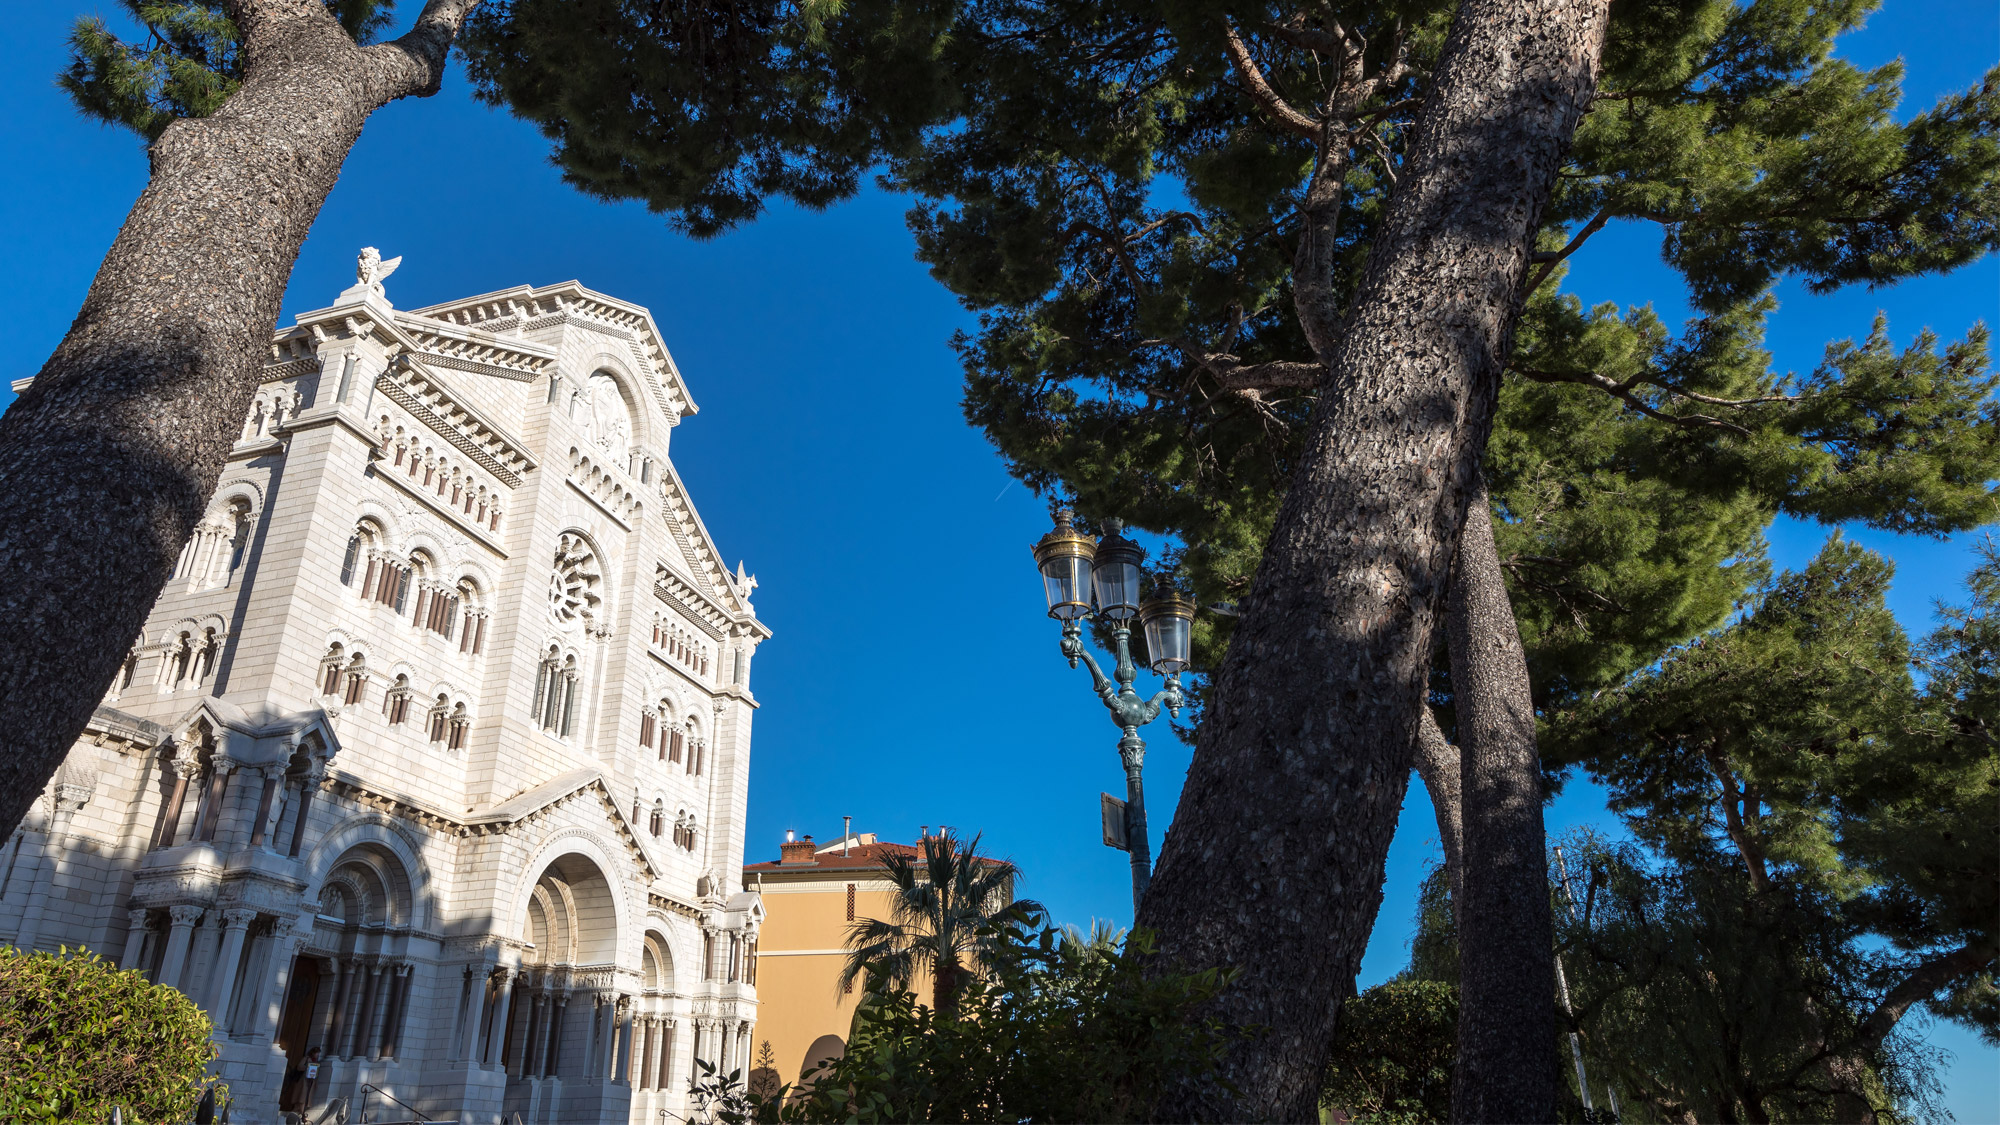 View of the Cathedral in Monaco-Ville in Monaco